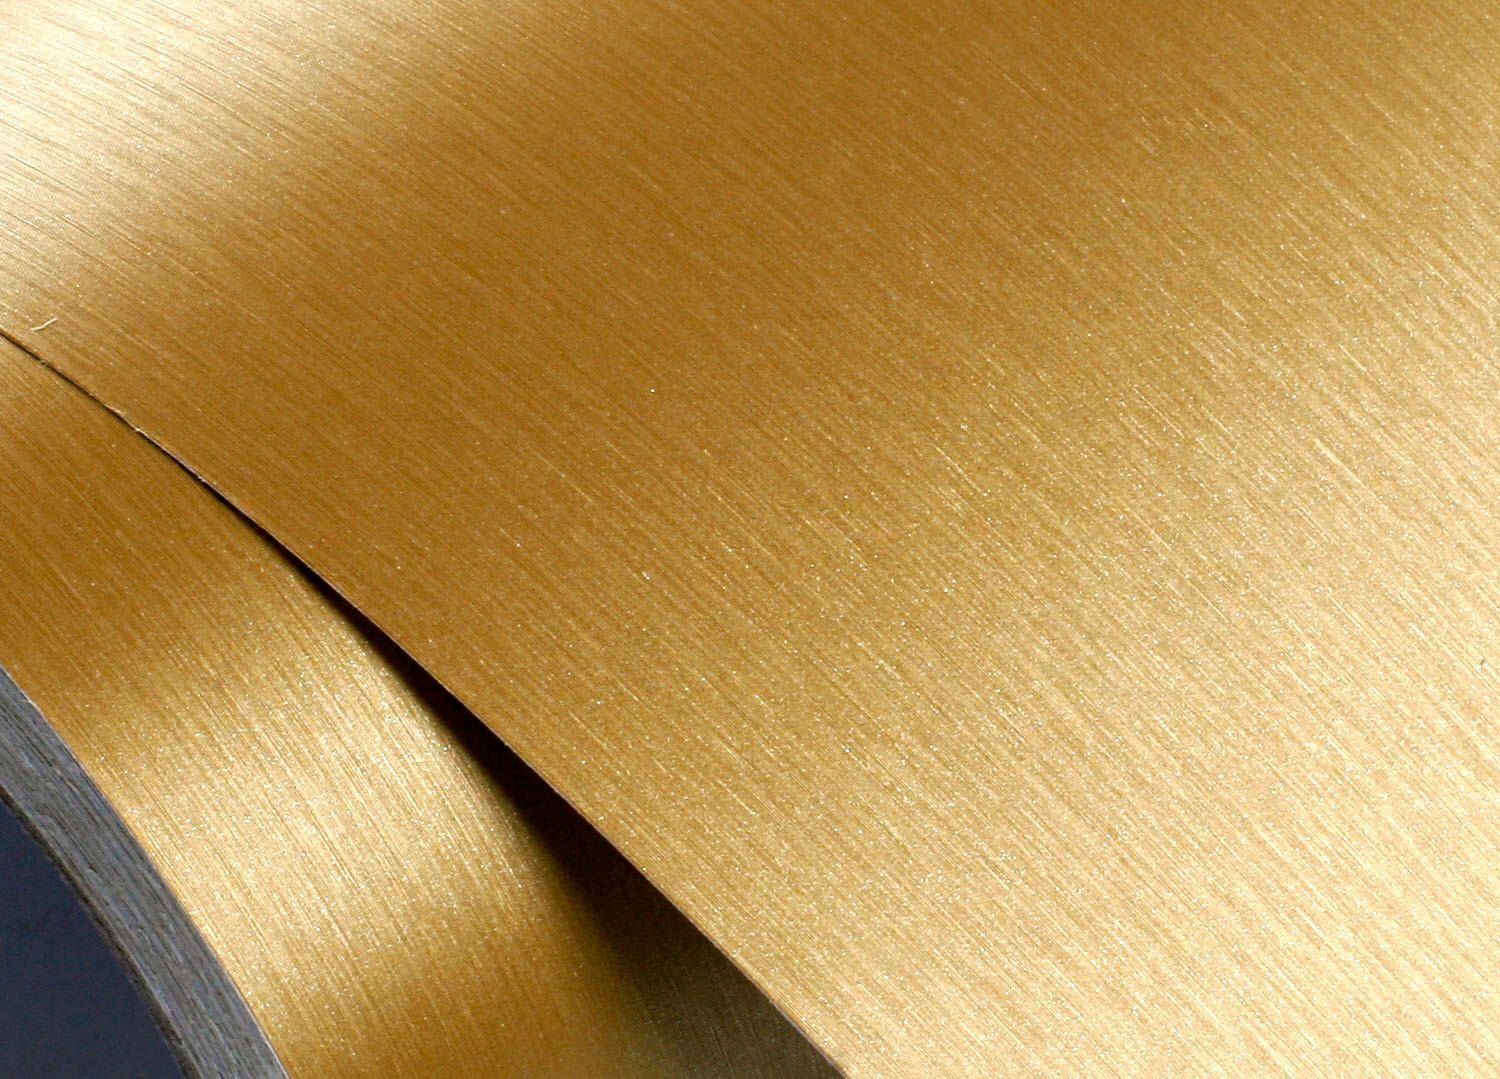 Peel & Stick Brushed Metal Pre-Pasted Contact Paper Self-adhesive Removable  Wallpaper [Gold : 50cm(1.64ft) X 300cm(9.84ft)]